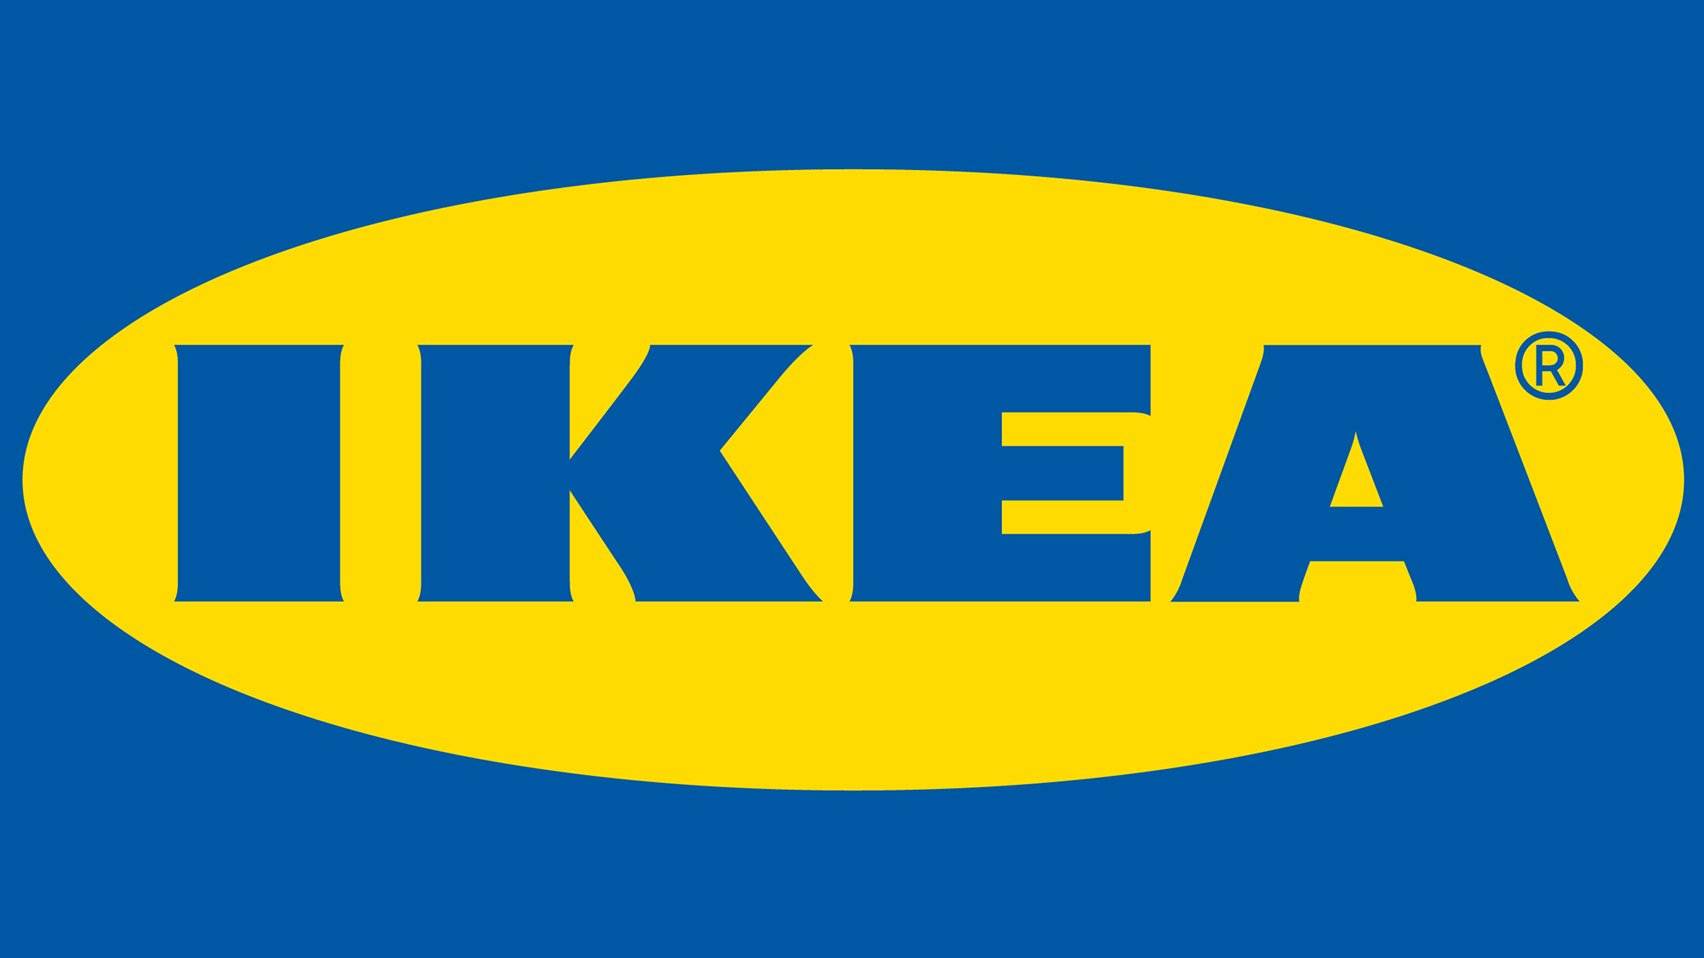 IKEA logo made